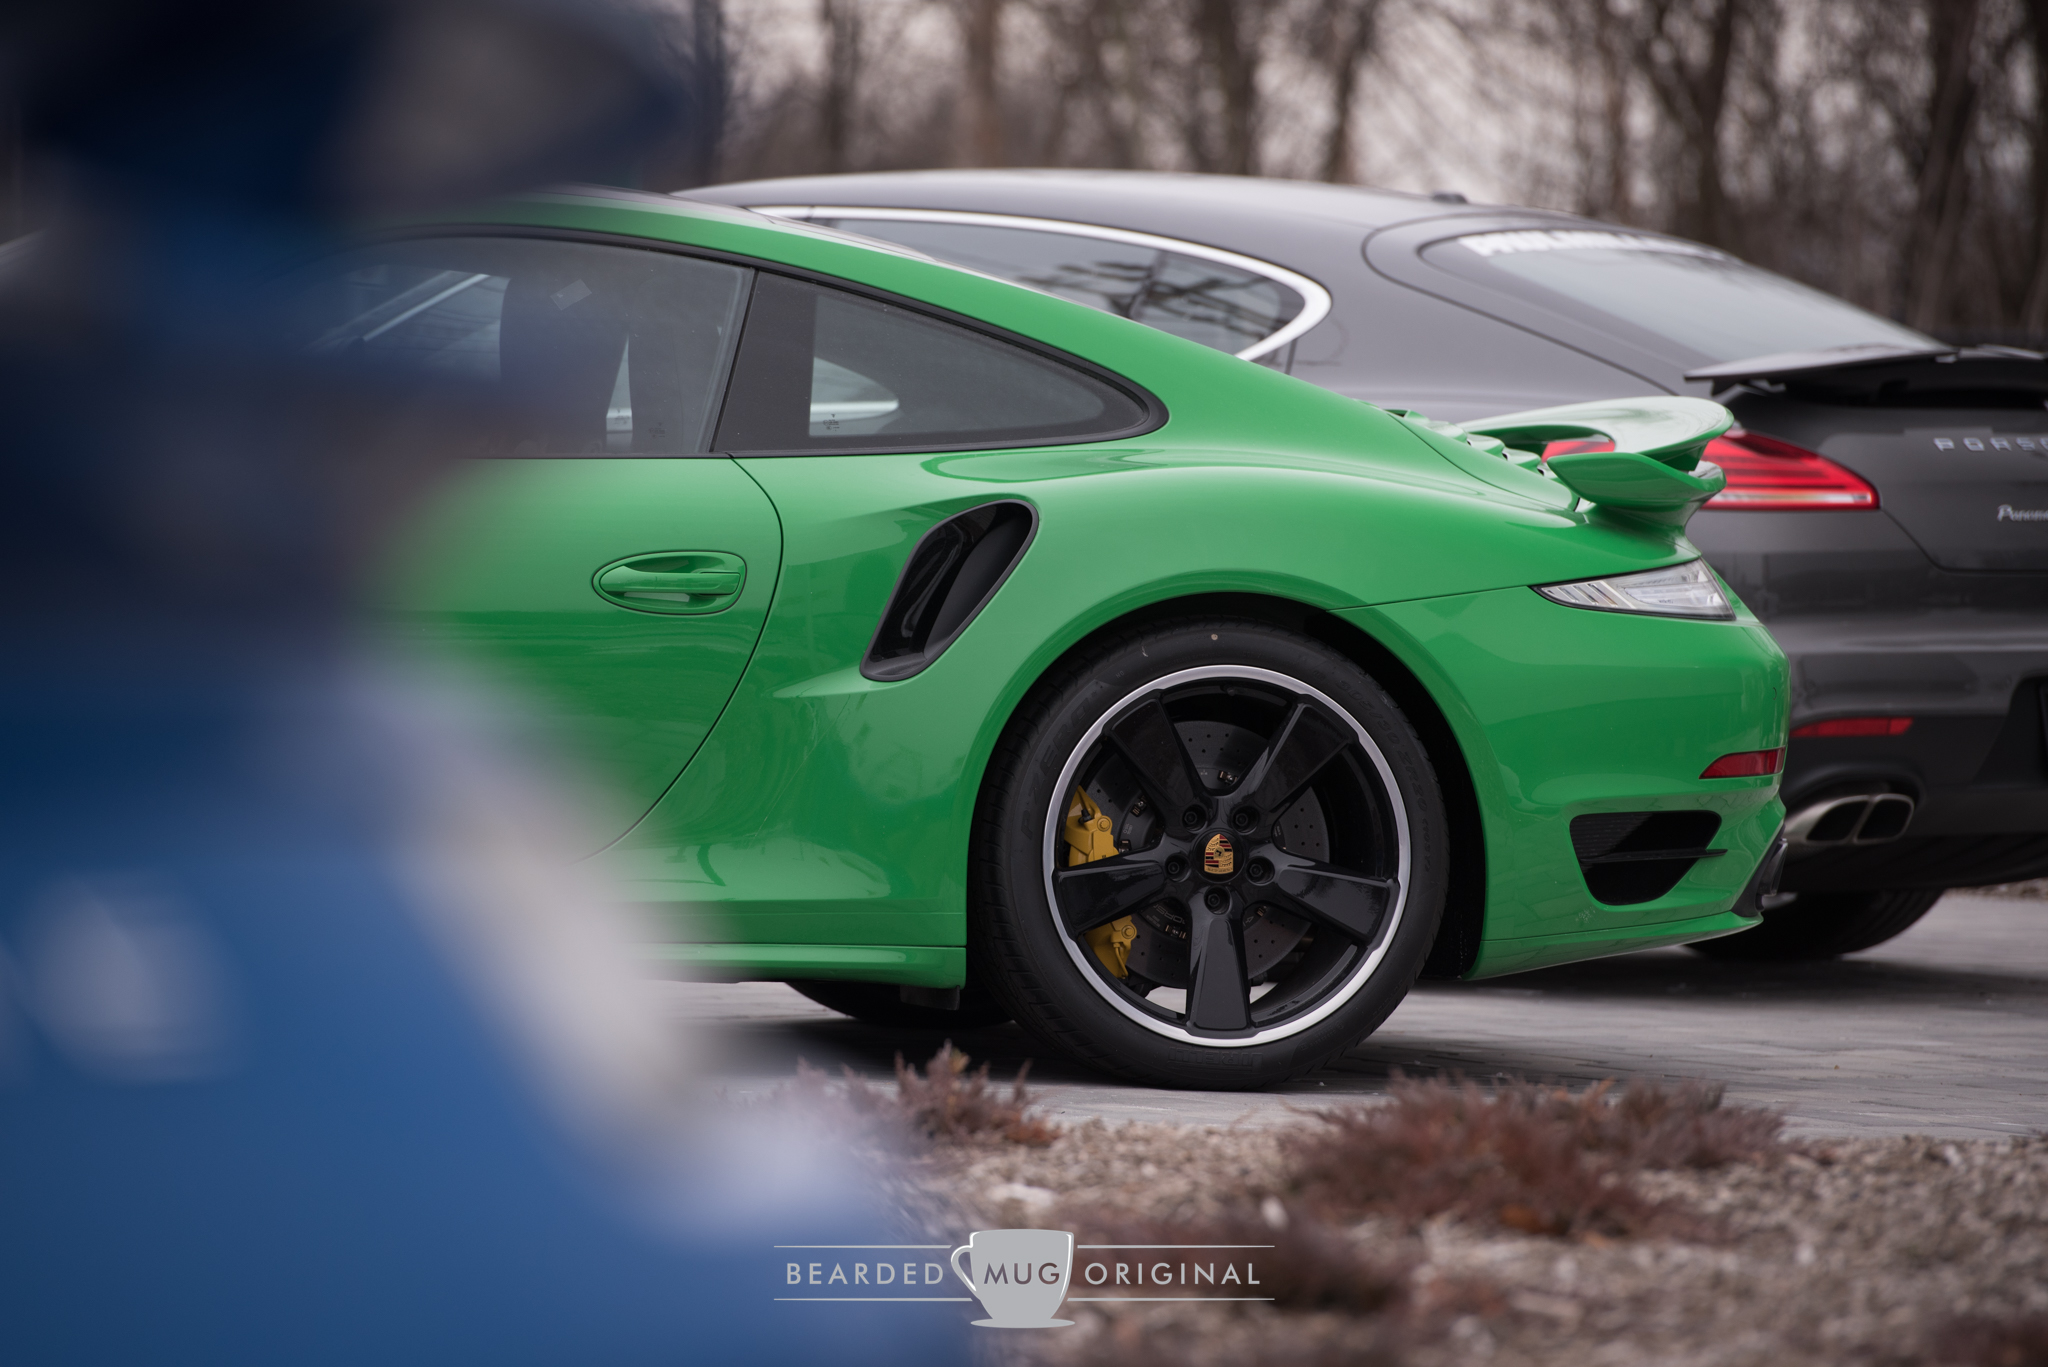 The juxtaposition of the blue and green Turbos was a great way to battle the blandness of the winter. Don't mind the gray Panamera in the background; no one handed me keys to shuffle the inventory.